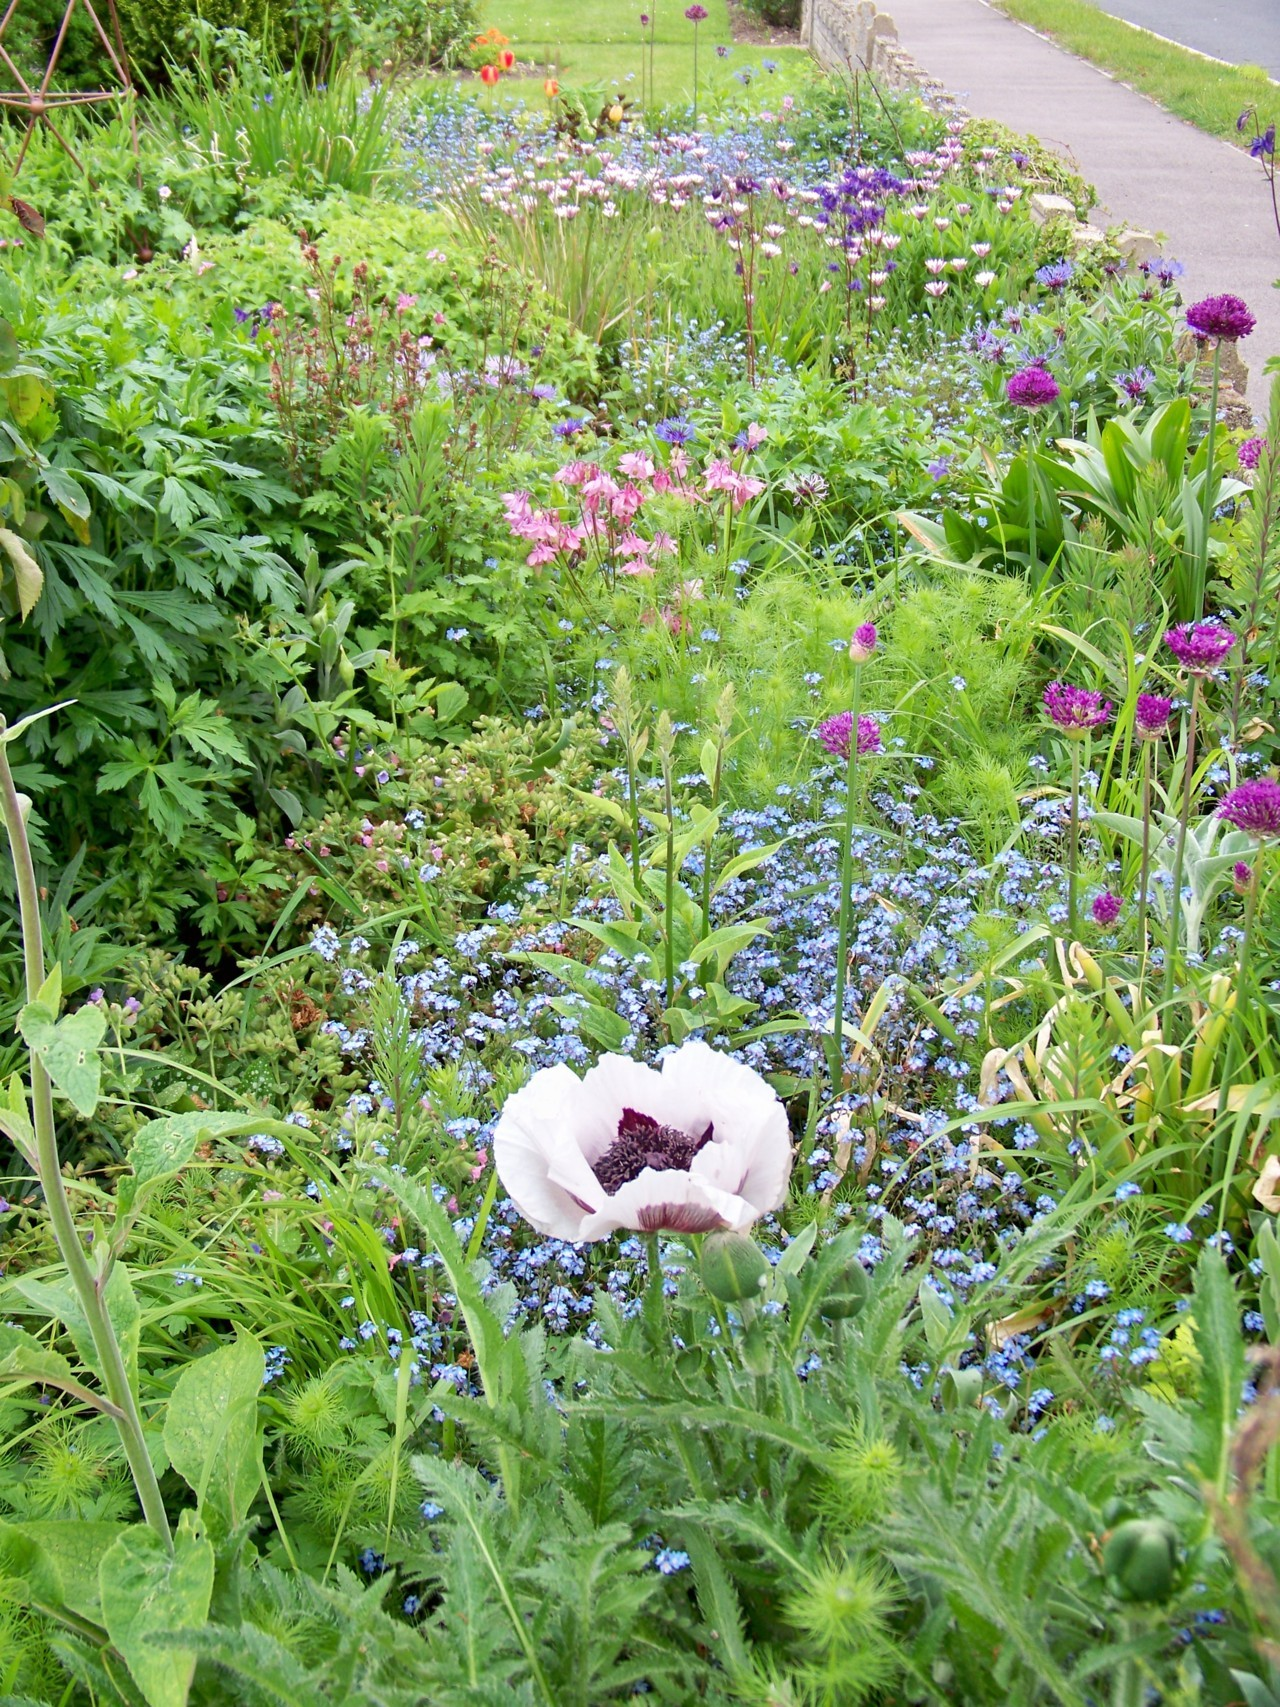 23rd May 2012. A photo for the week of the Chelsea Flower Show! Part of the front garden early this morning.